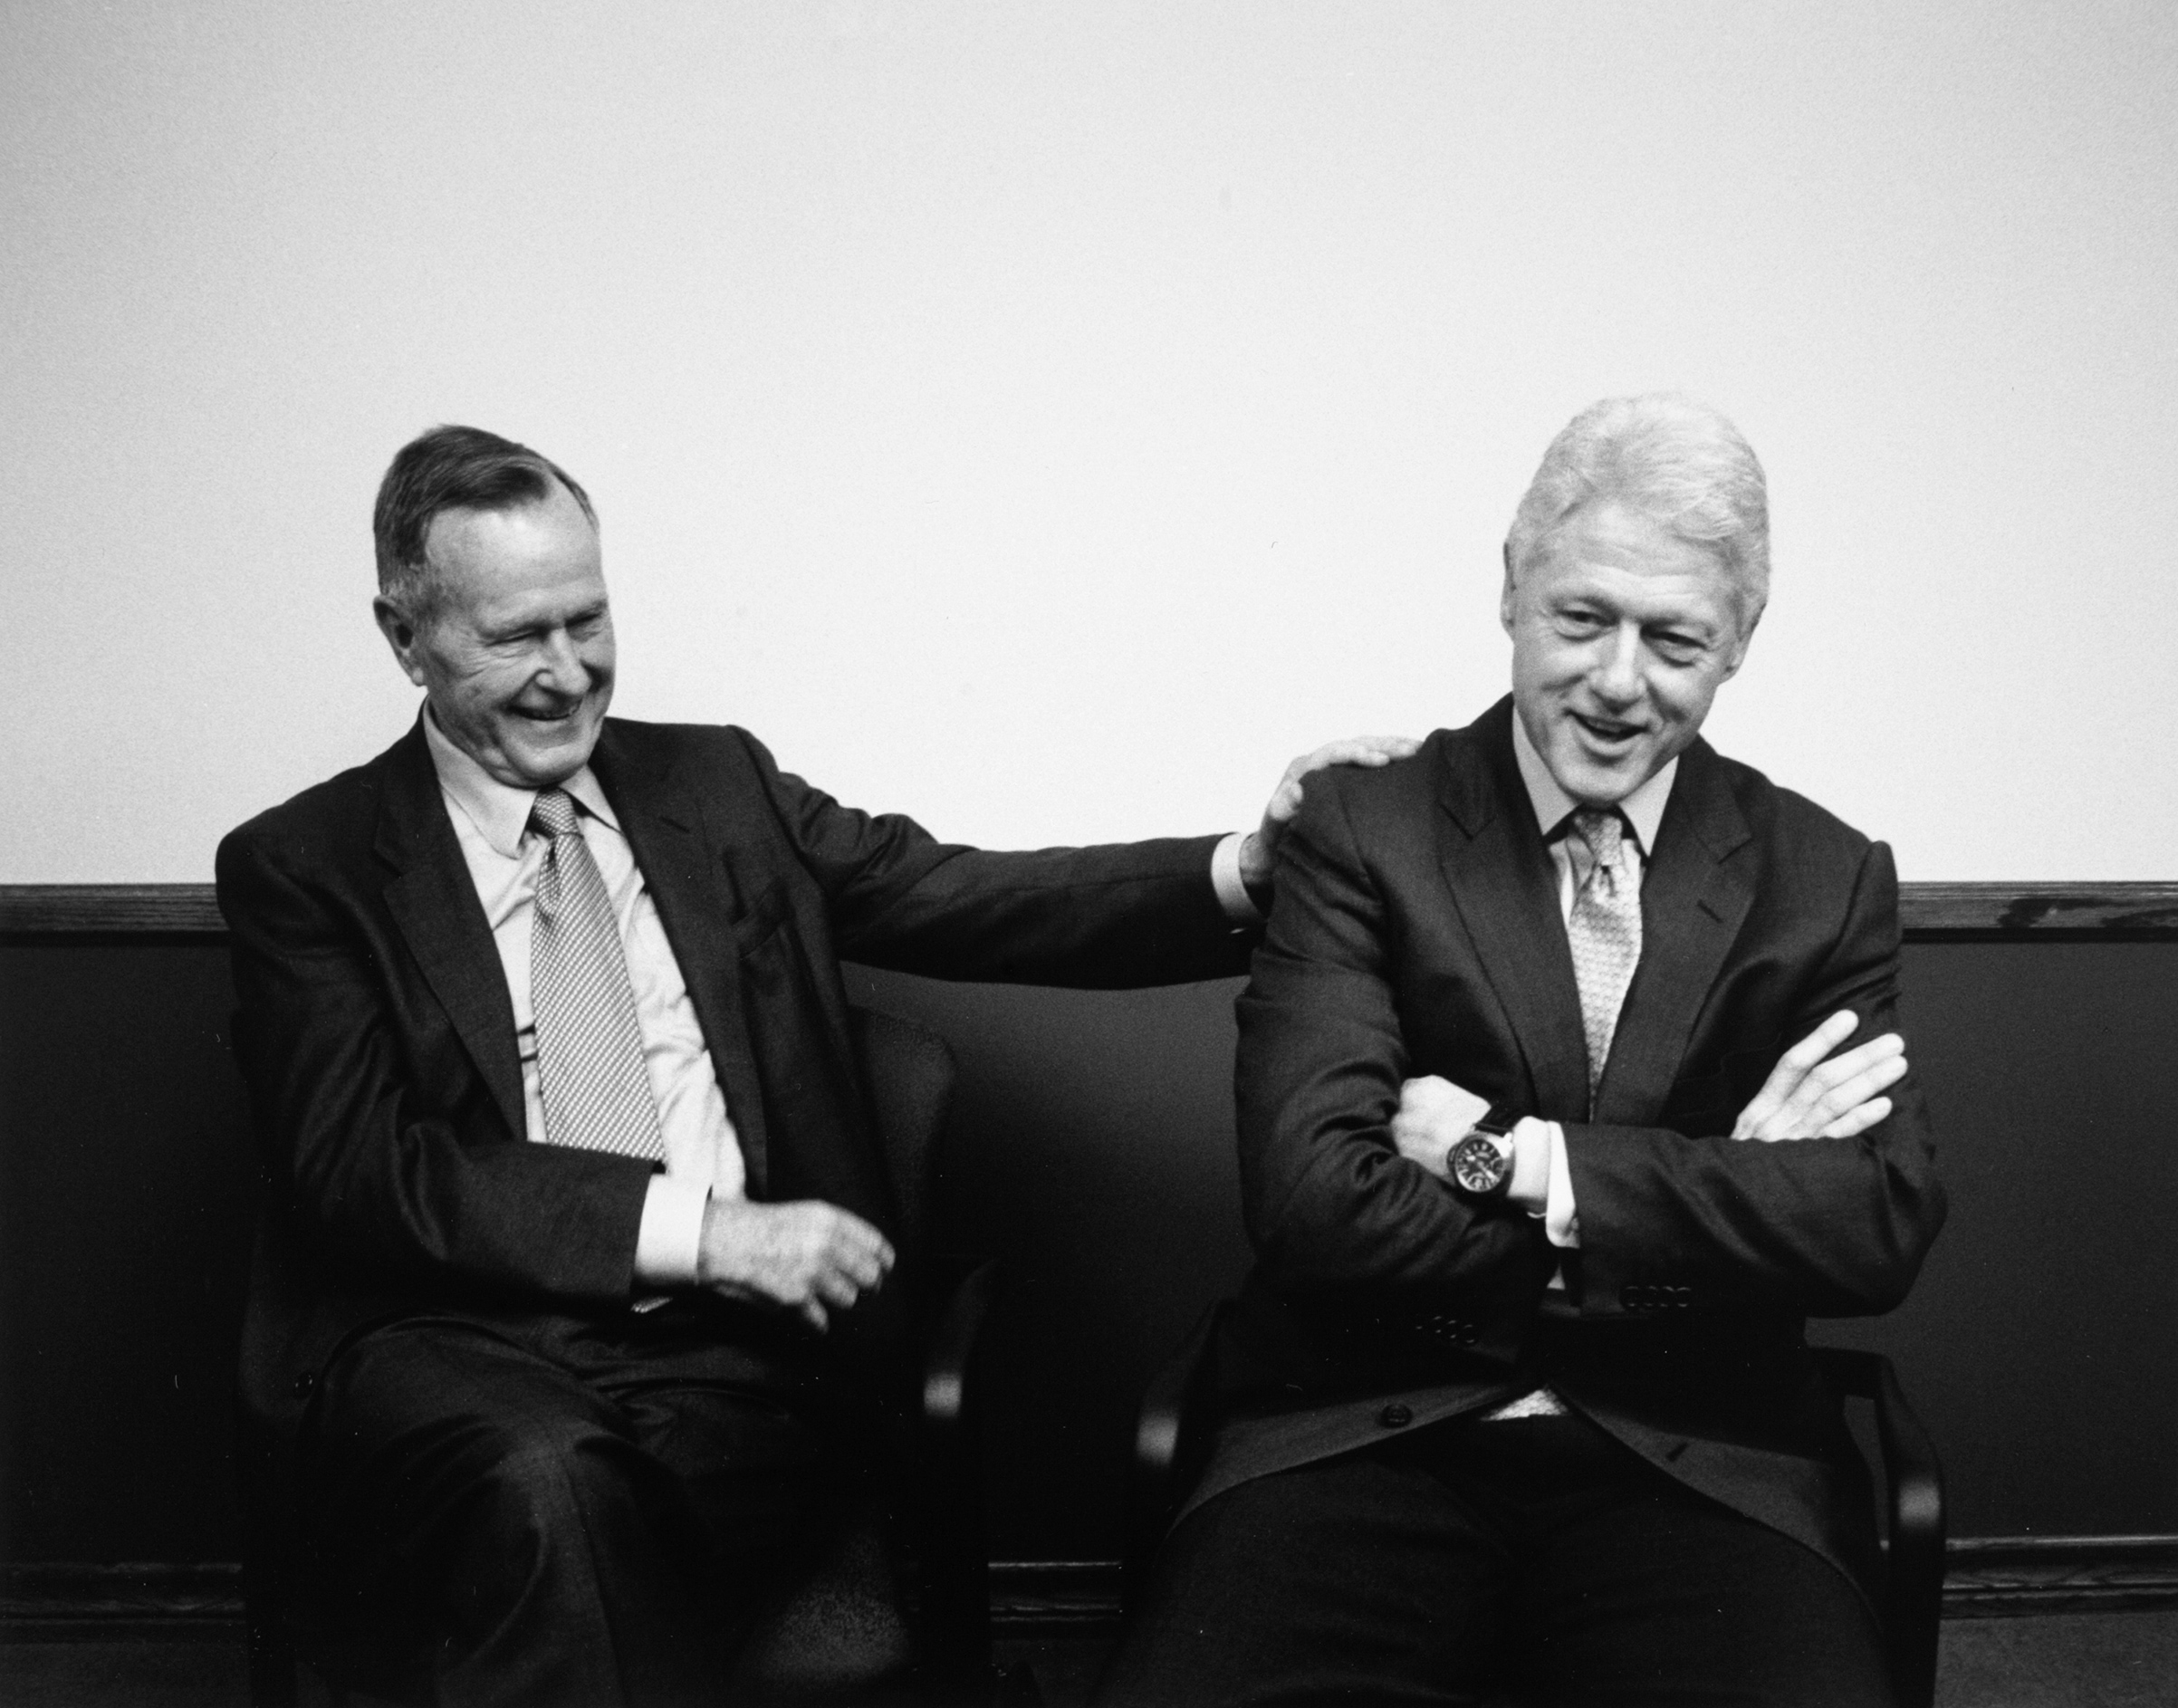 Behind the scenes with former Presidents George H.W. Bush and Bill Clinton coming together to raise money for Katrina  at the University of New Orleans, 2005.